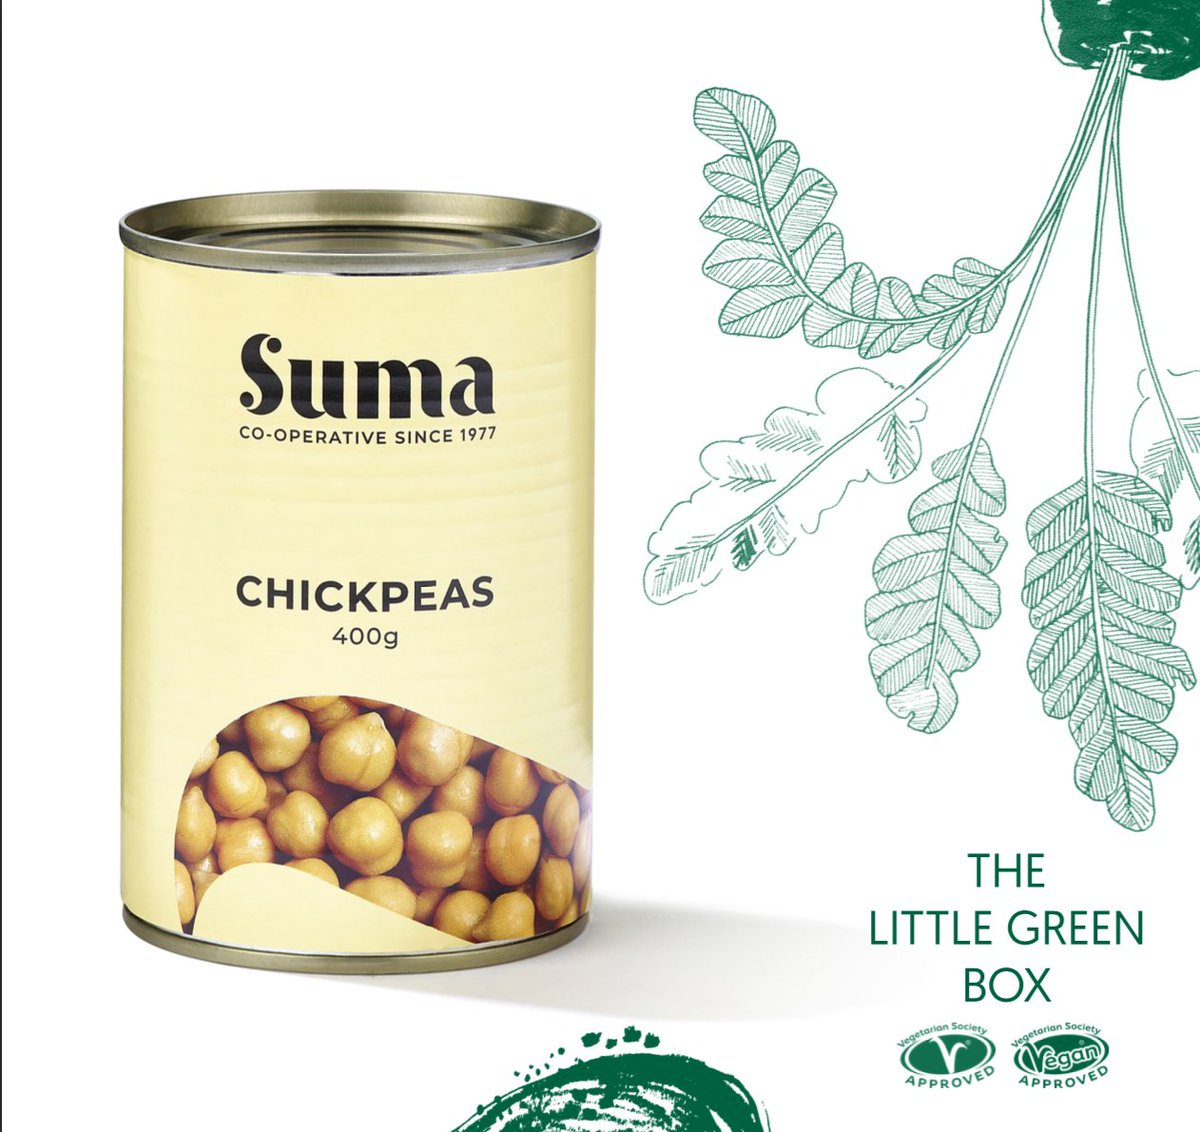 Our #LittleGreenBox is being sent to thousands of students across the UK during #FreshersWeek2019. The box includes a tin of tasty @SumaWholefoods chickpeas so you can grab the last couple of tomatoes in the fridge and cook up a veggie feast! 🍴